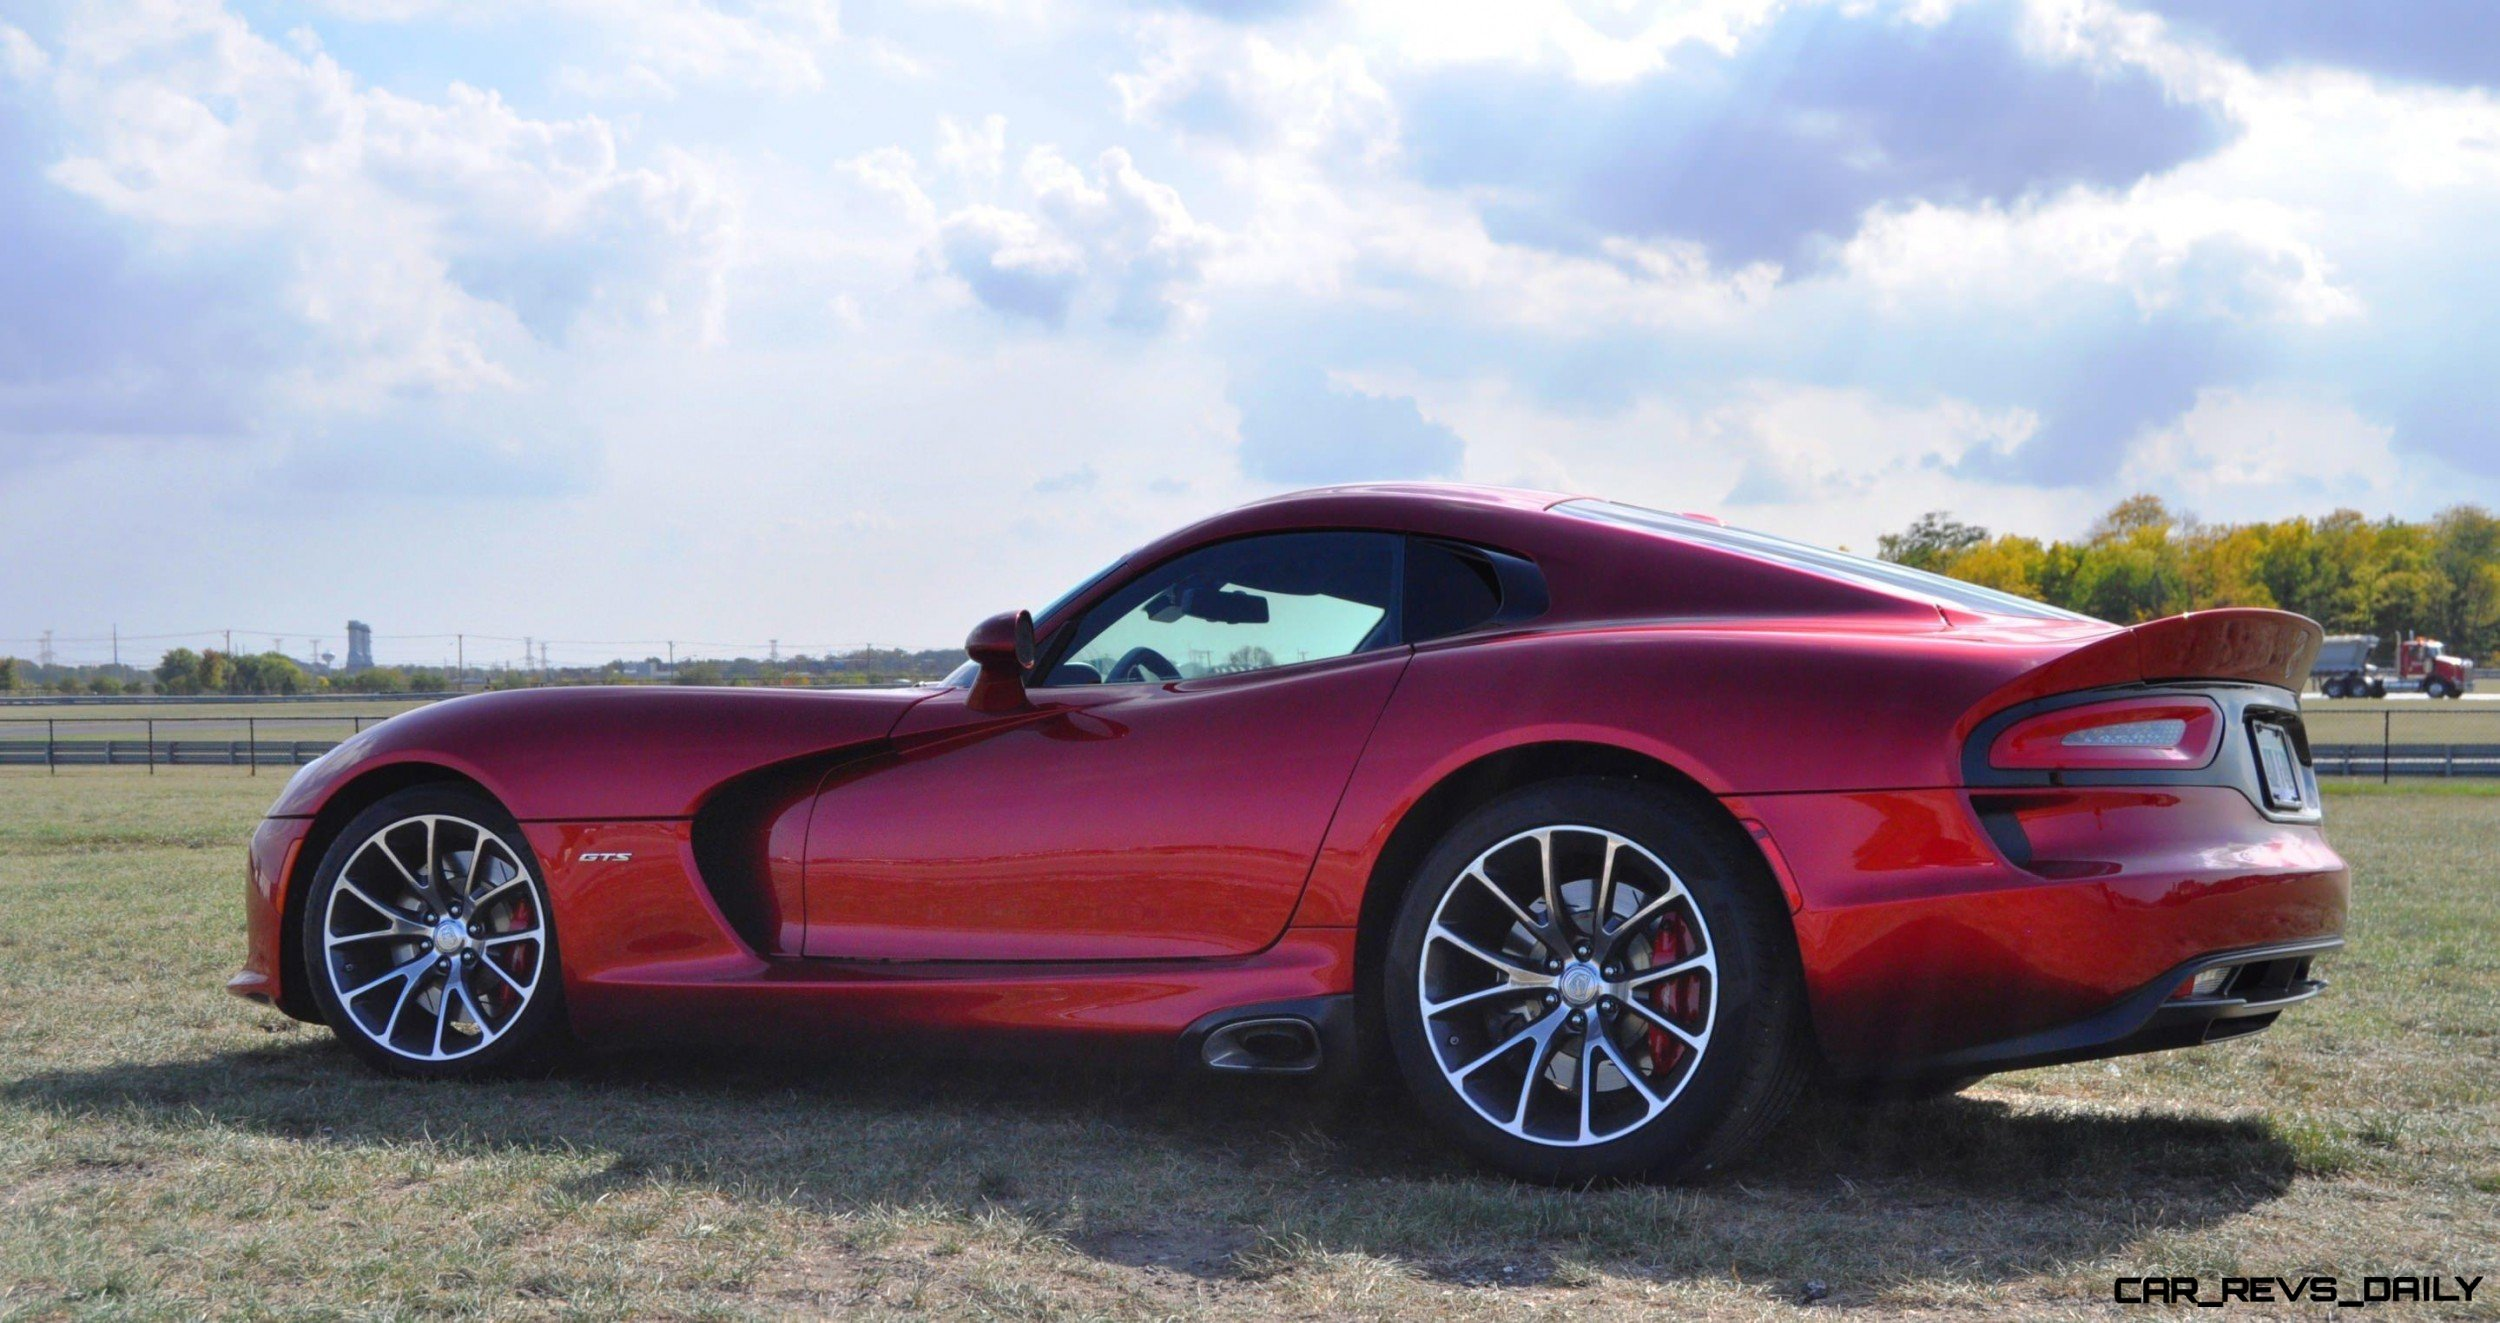 CarRevsDaily.com - 2014 SRT Viper GTS - Huge Wallpapers19